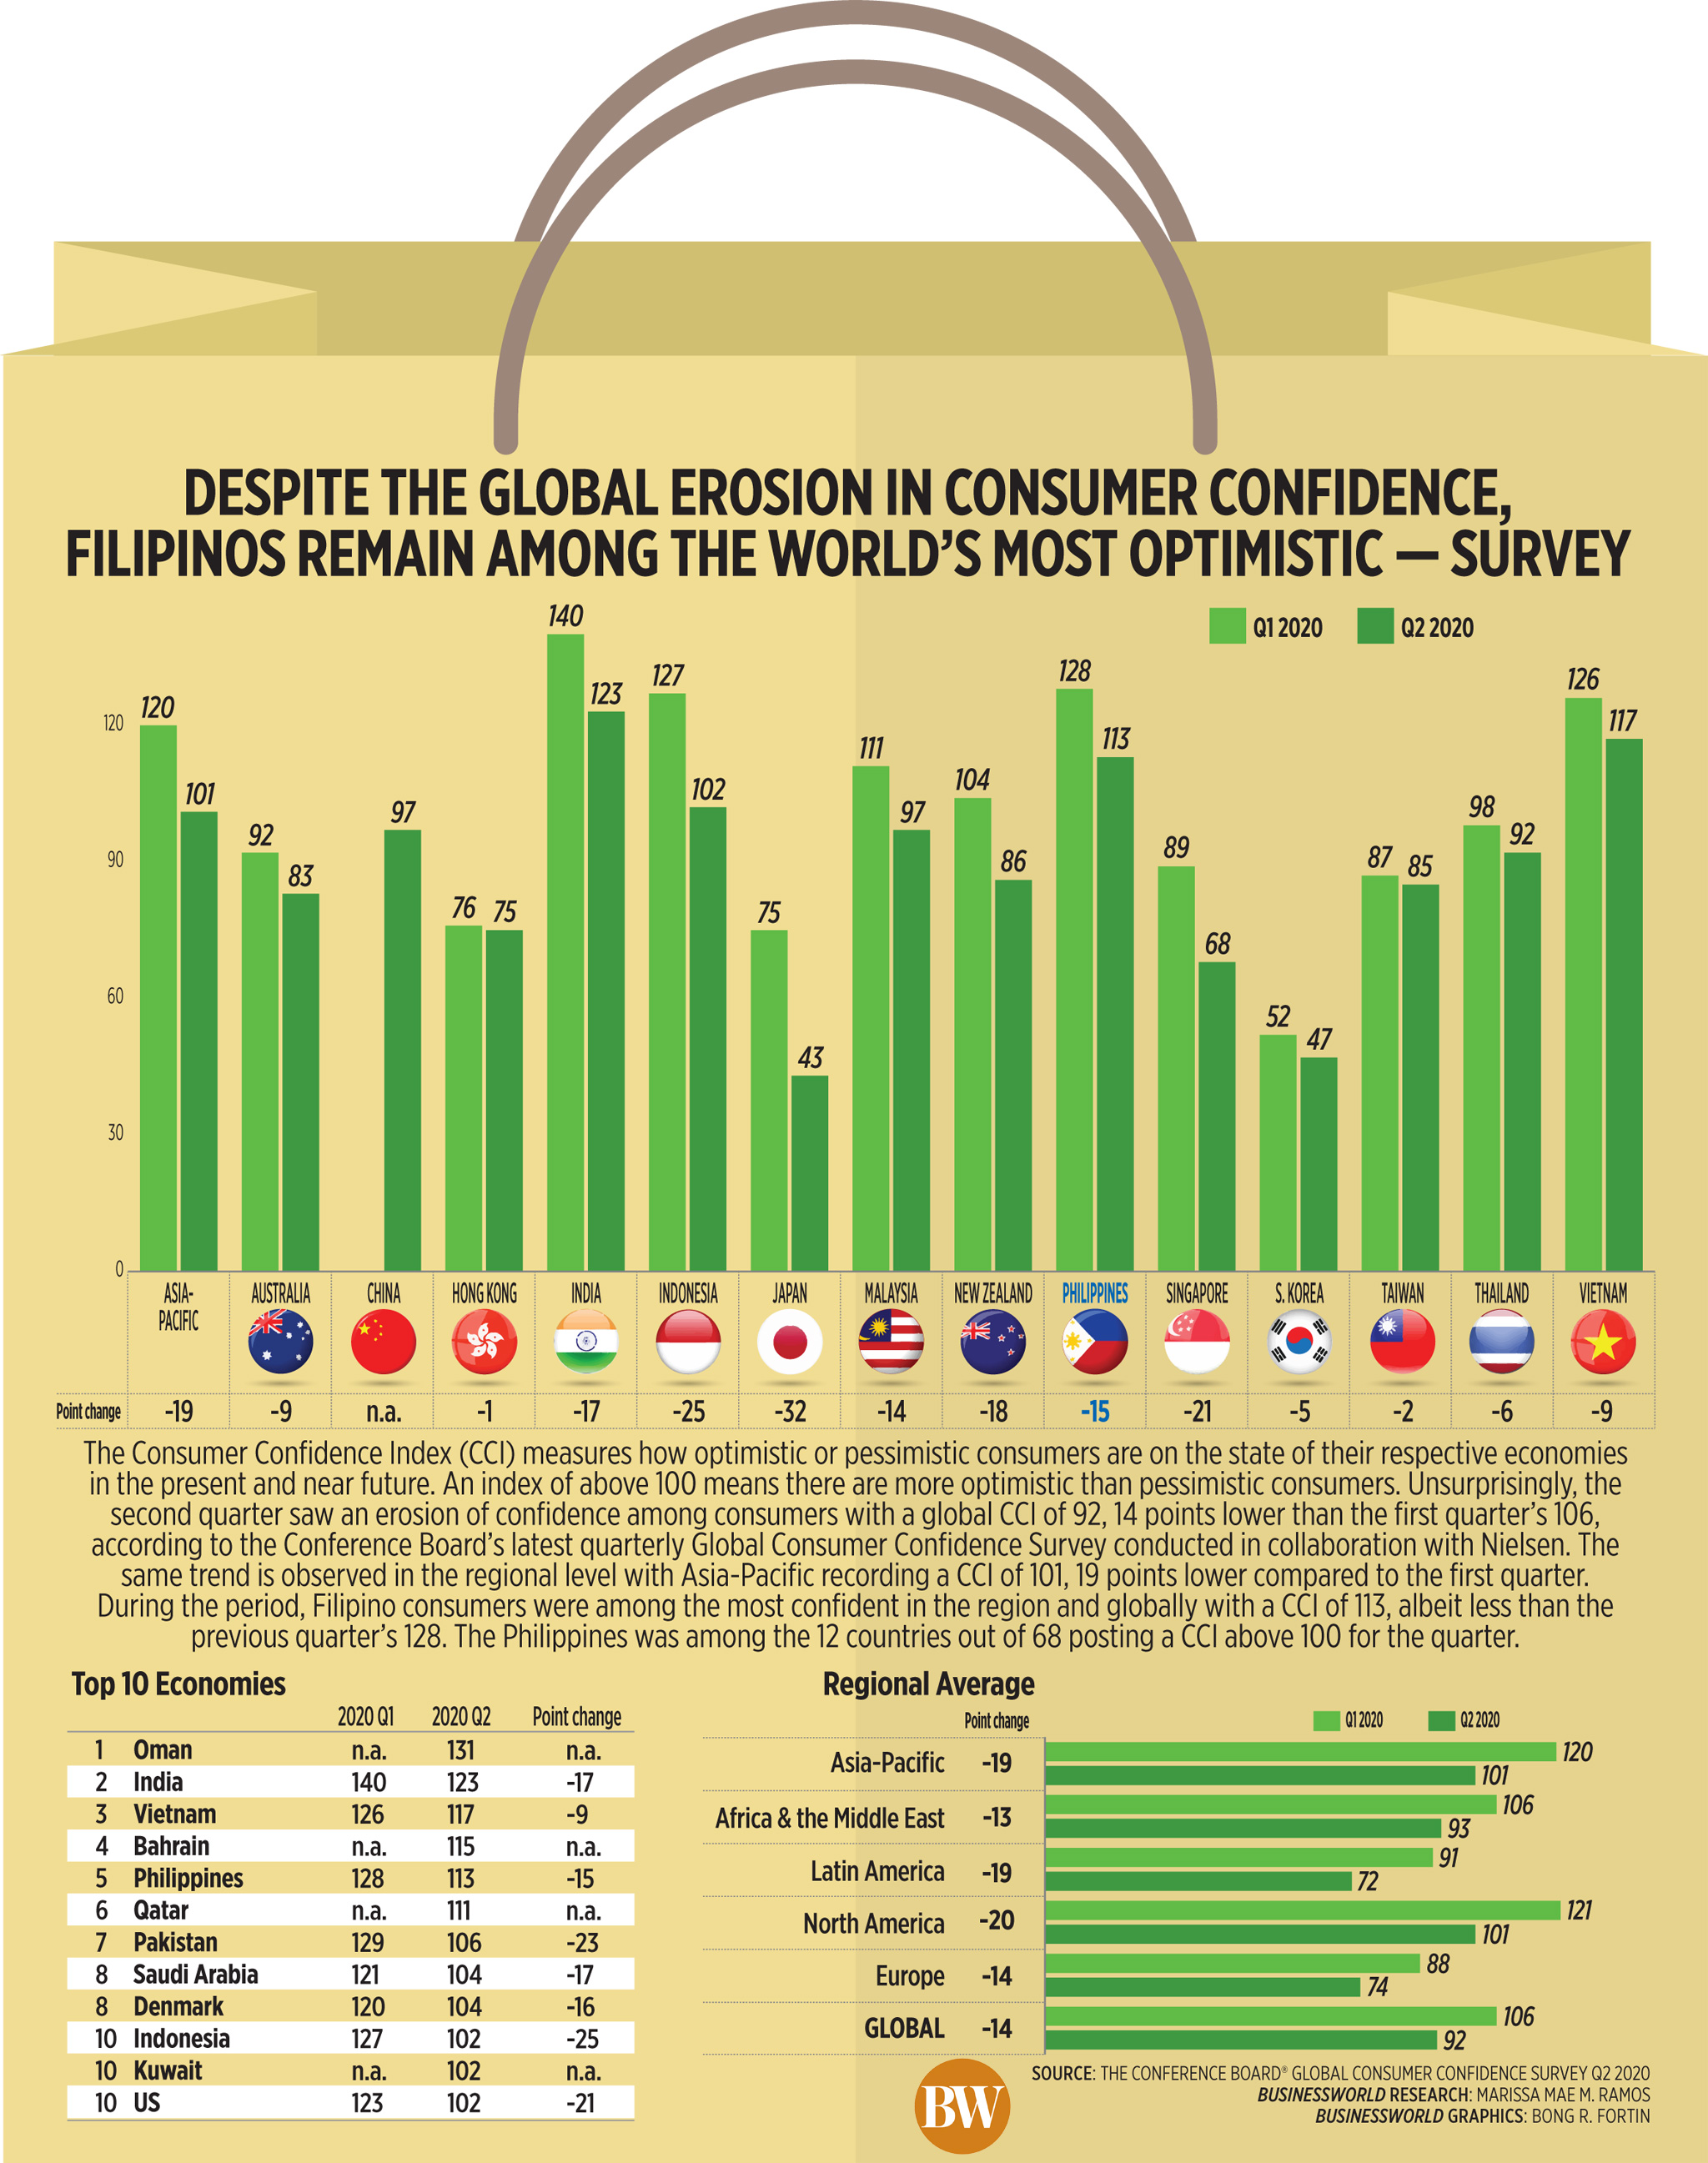 Despite the global erosion in consumer confidence, Filipinos remain among the world's most optimistic — survey